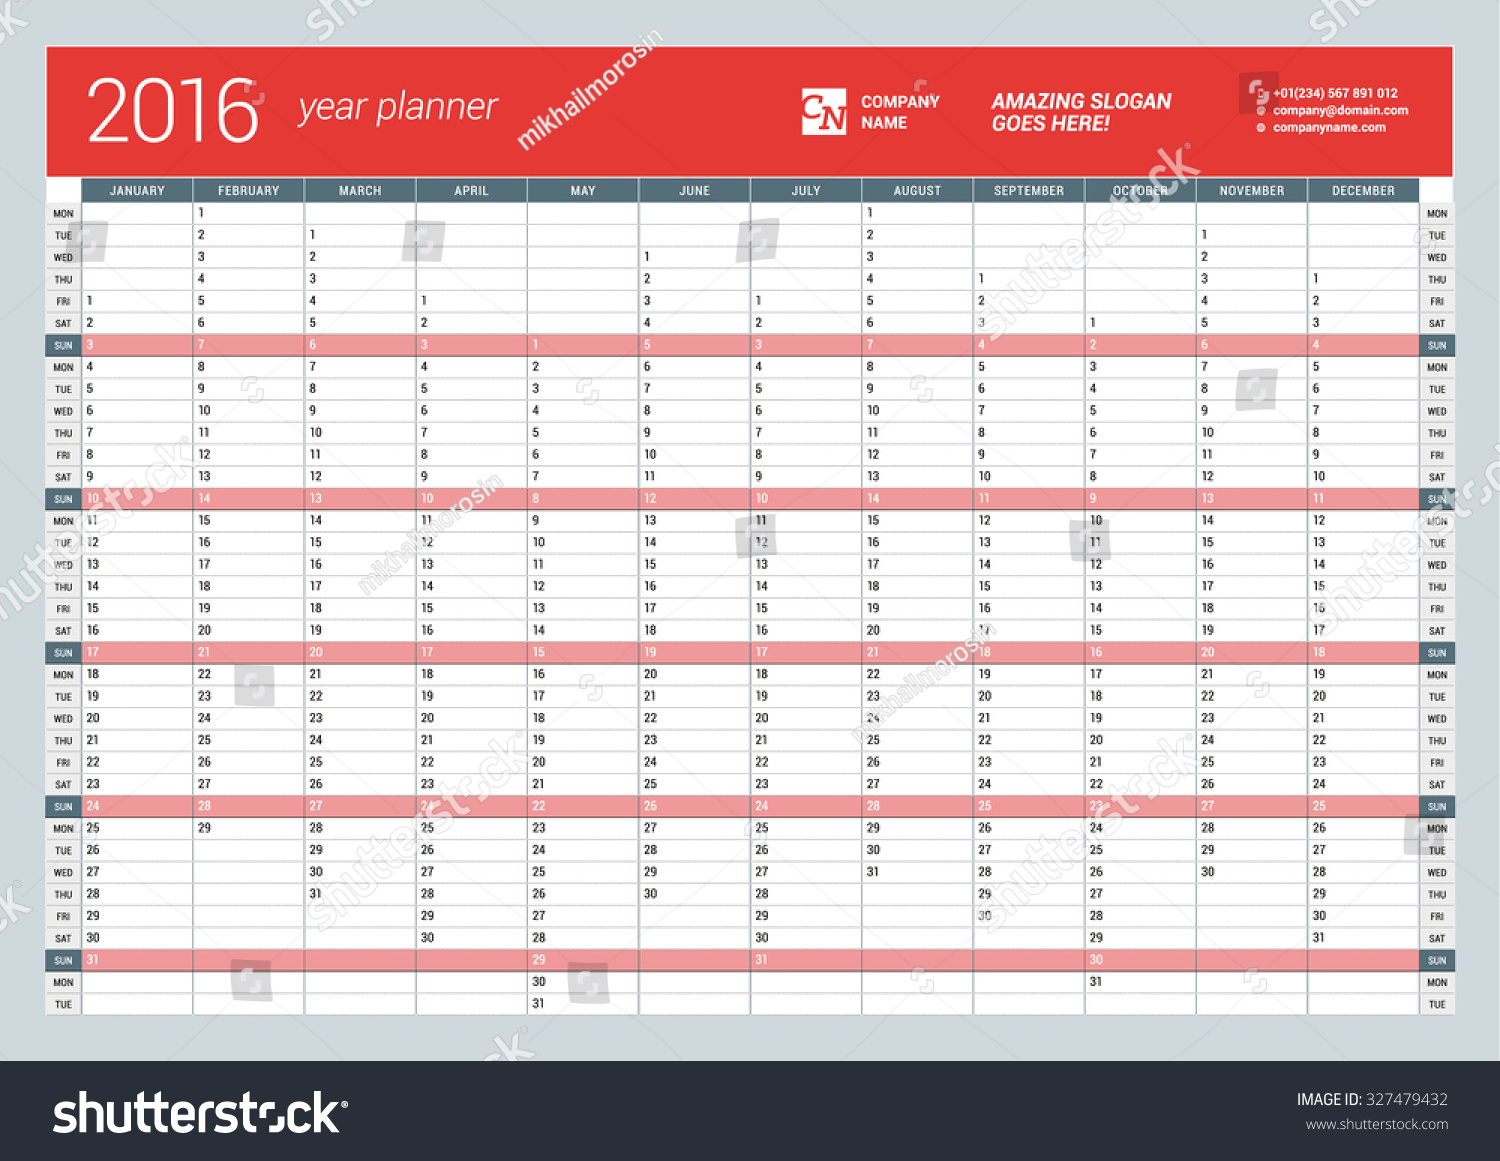 Planner Style Calendar Template : Yearly wall calendar planner template stock vector